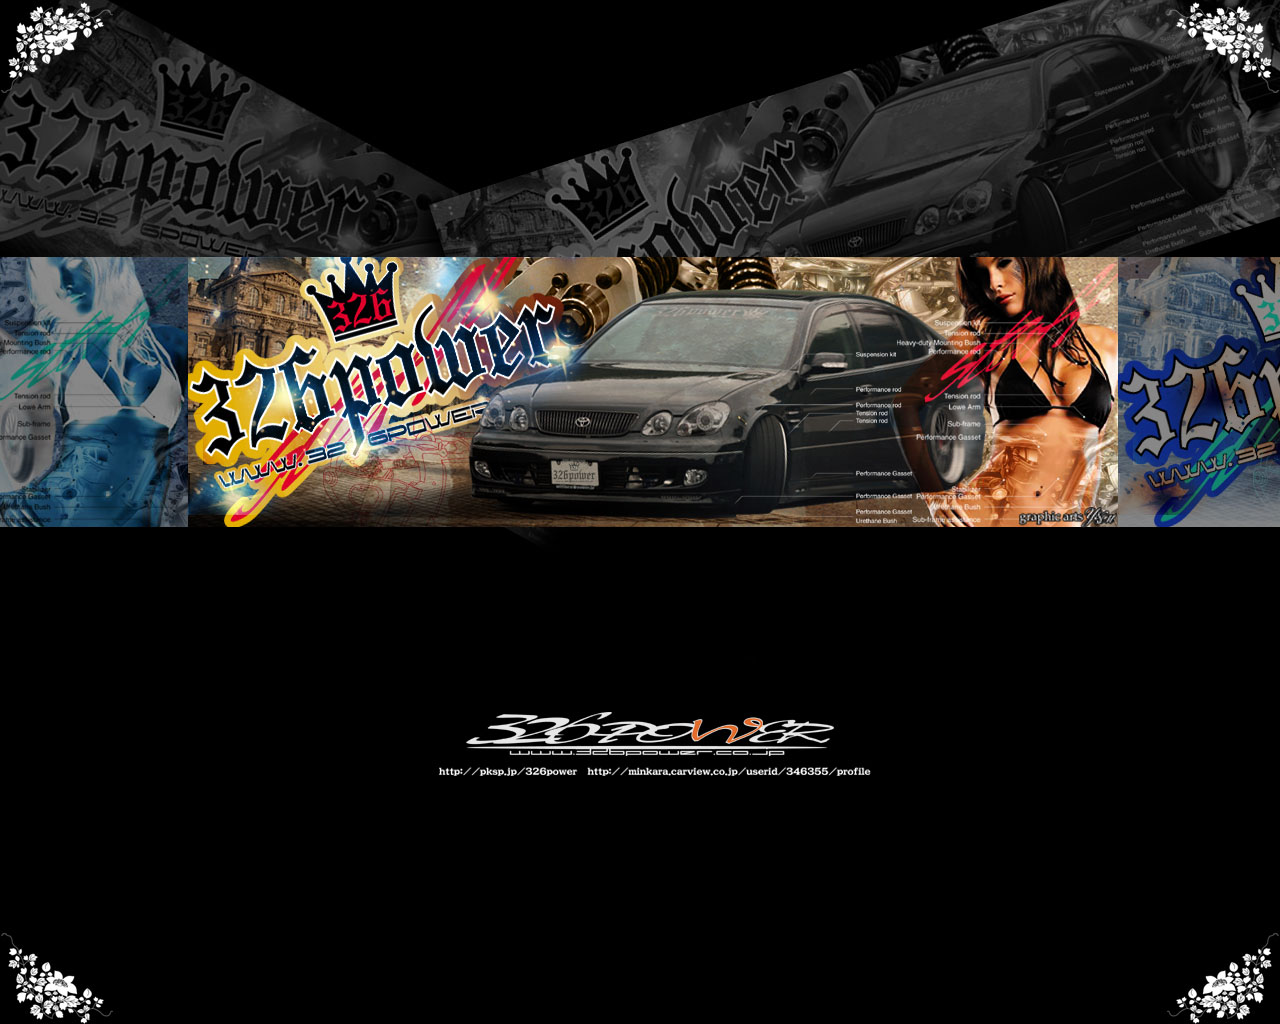 y mのフォトギャラリー 326power Wall Papers No 001 日産